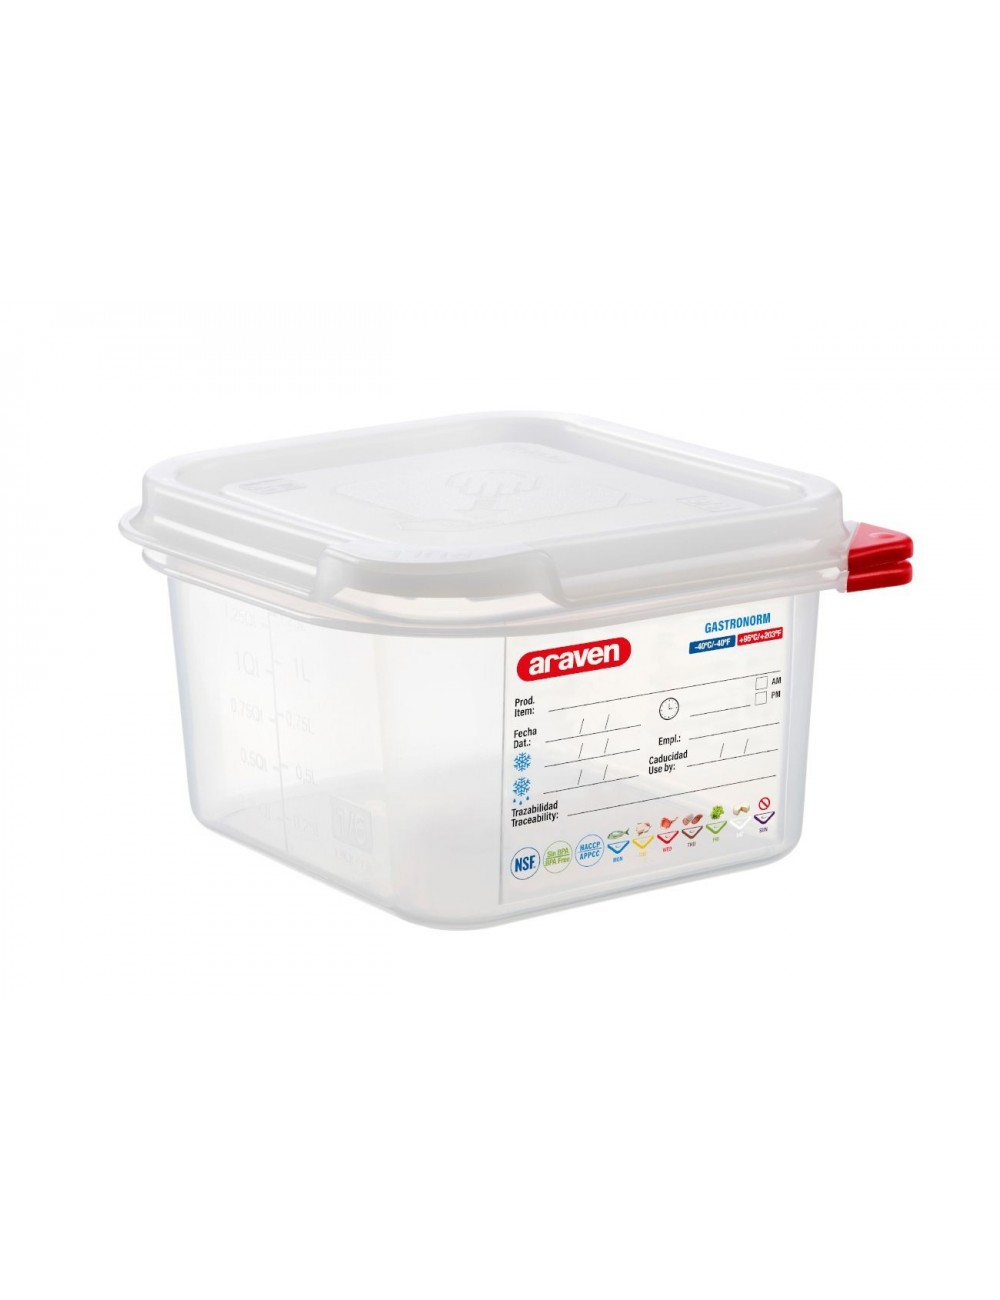 AIRTIGHT CONTAINER - GN 1/6 - Height 100 mm